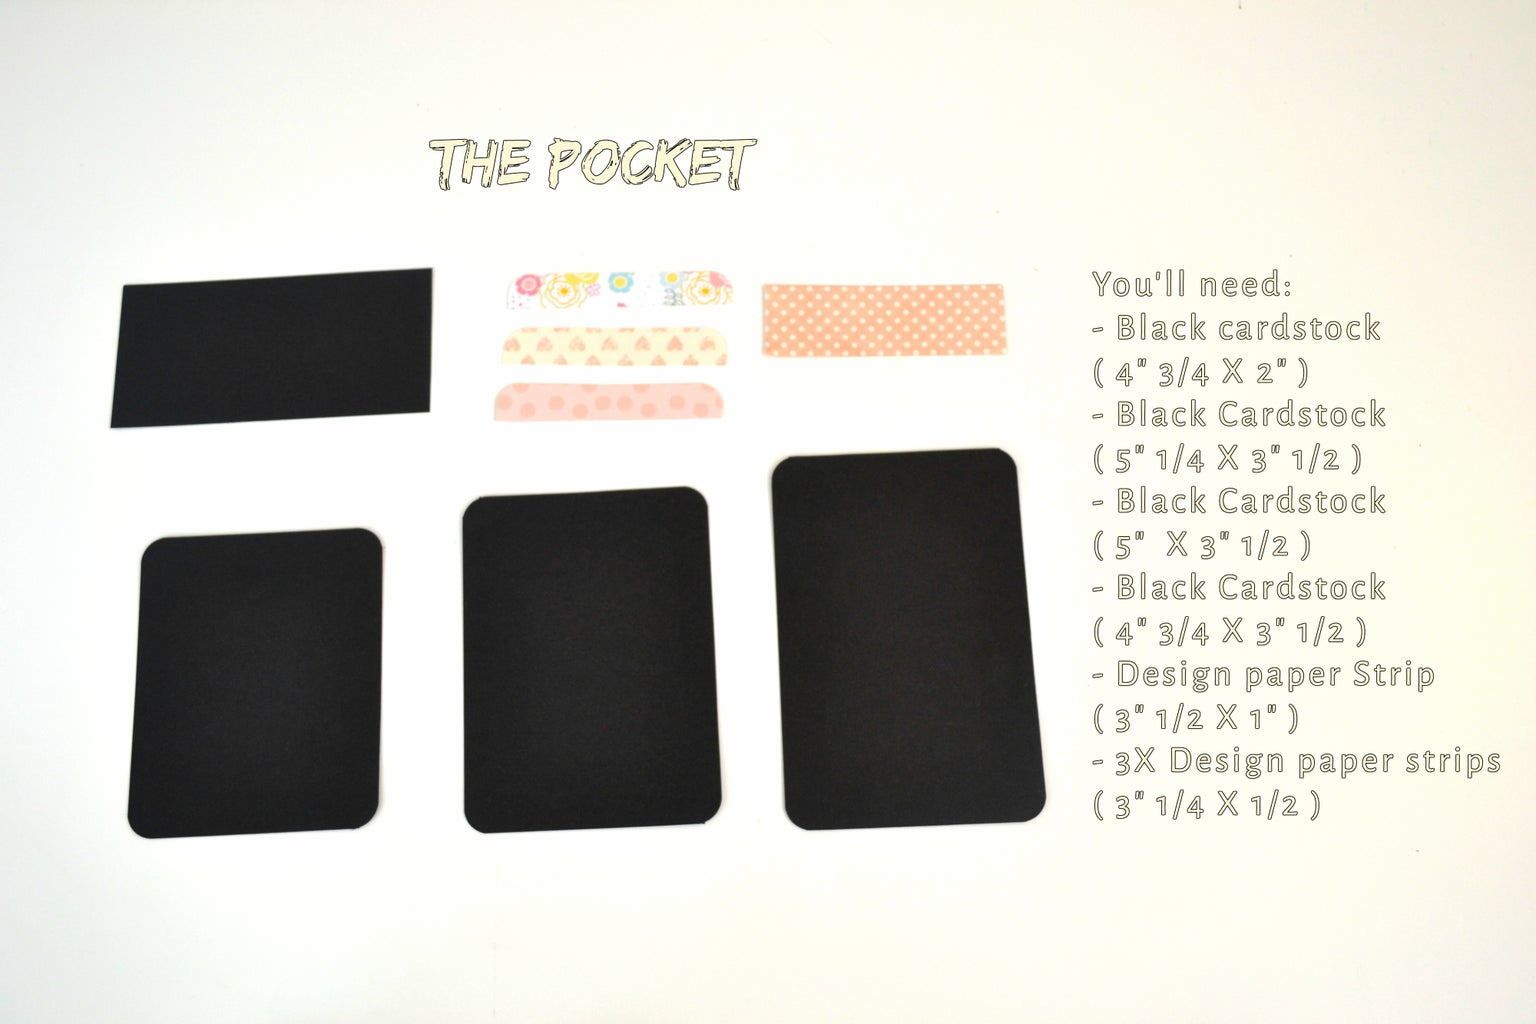 Making the Pocket: Dimensions